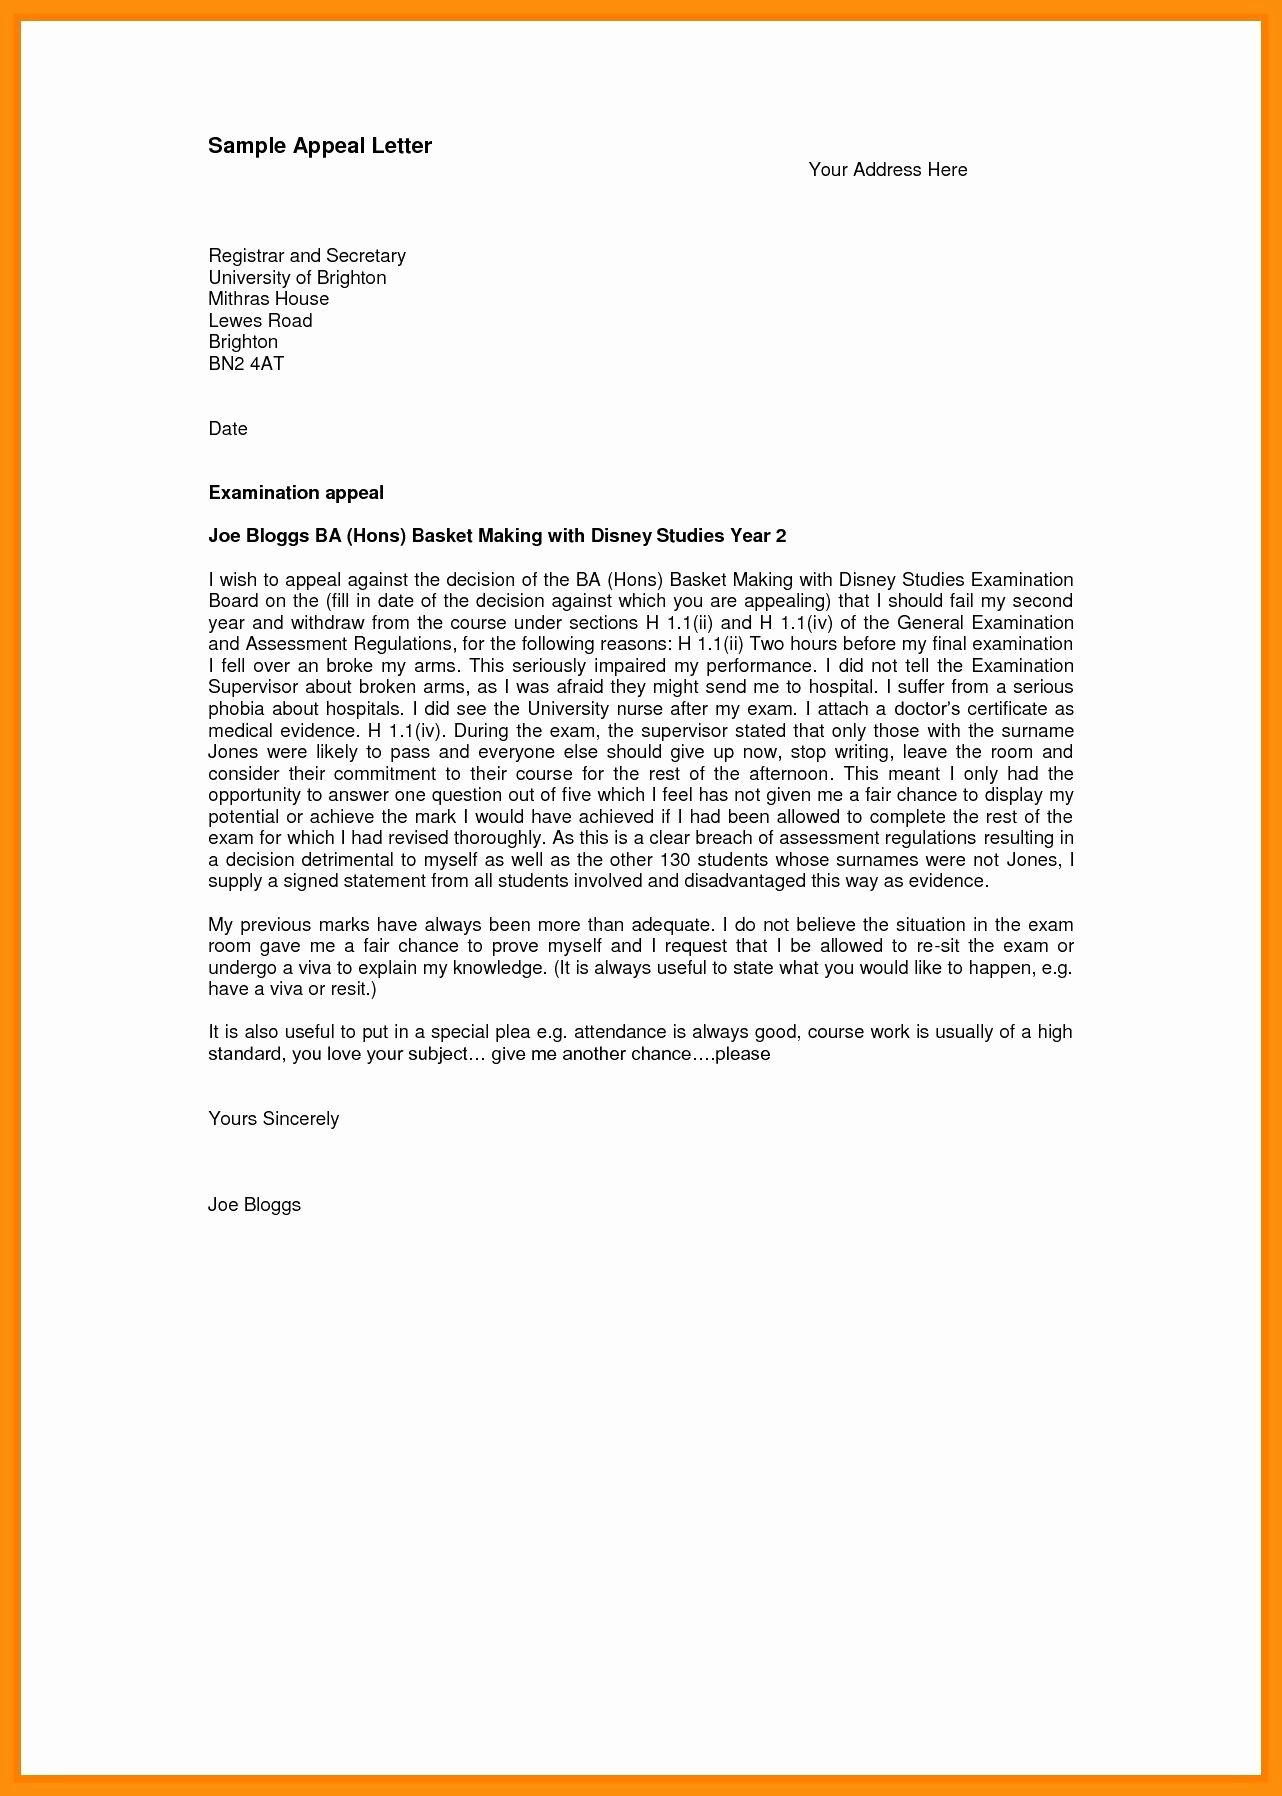 College Appeal Letter format Inspirational University Appeal Letter for Admission Sample Exclusion